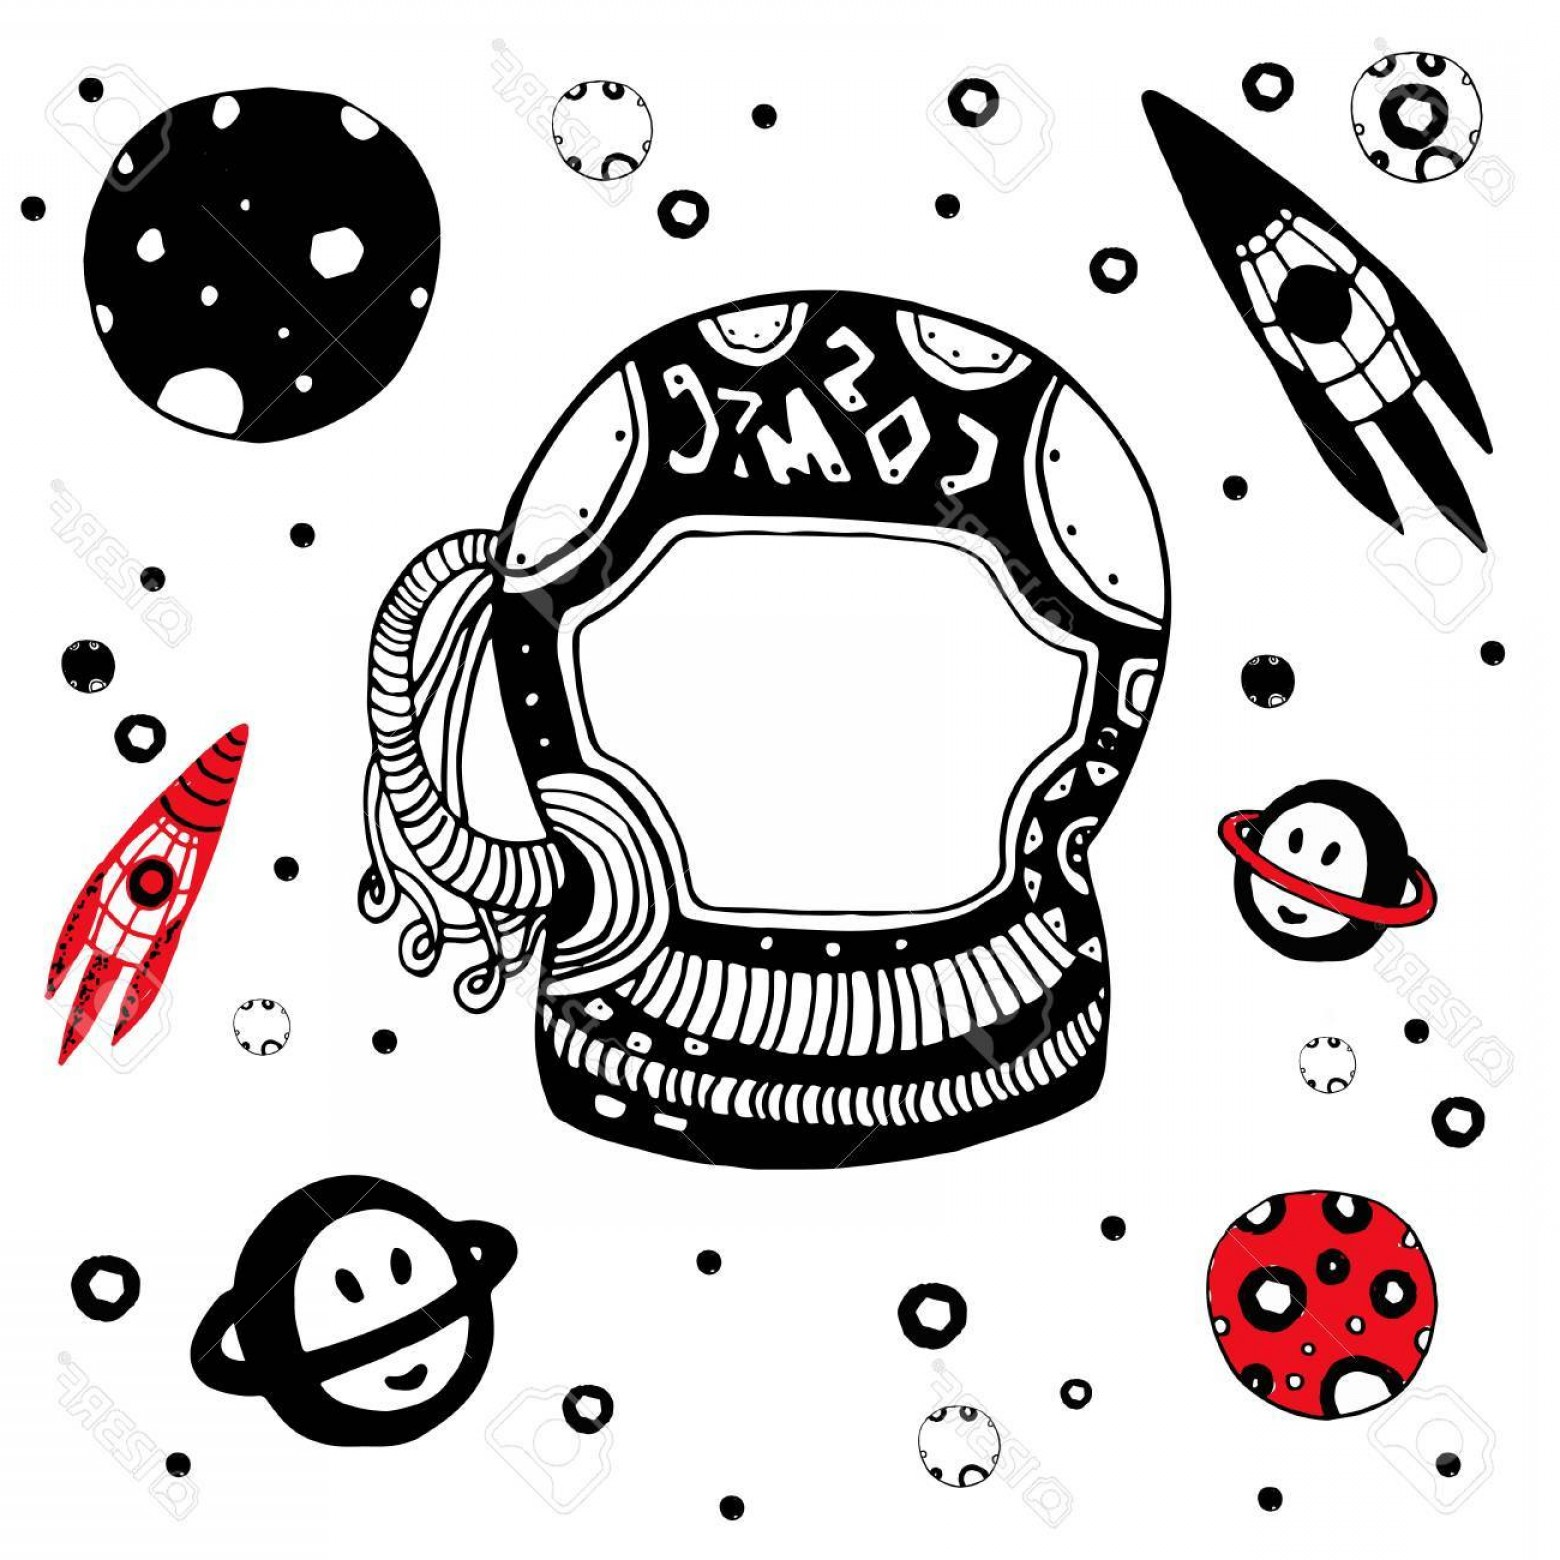 Cosmic Vector Imige: Photodoodle Astronomical Objects Set Hand Drawn Cosmic Vector Illustration